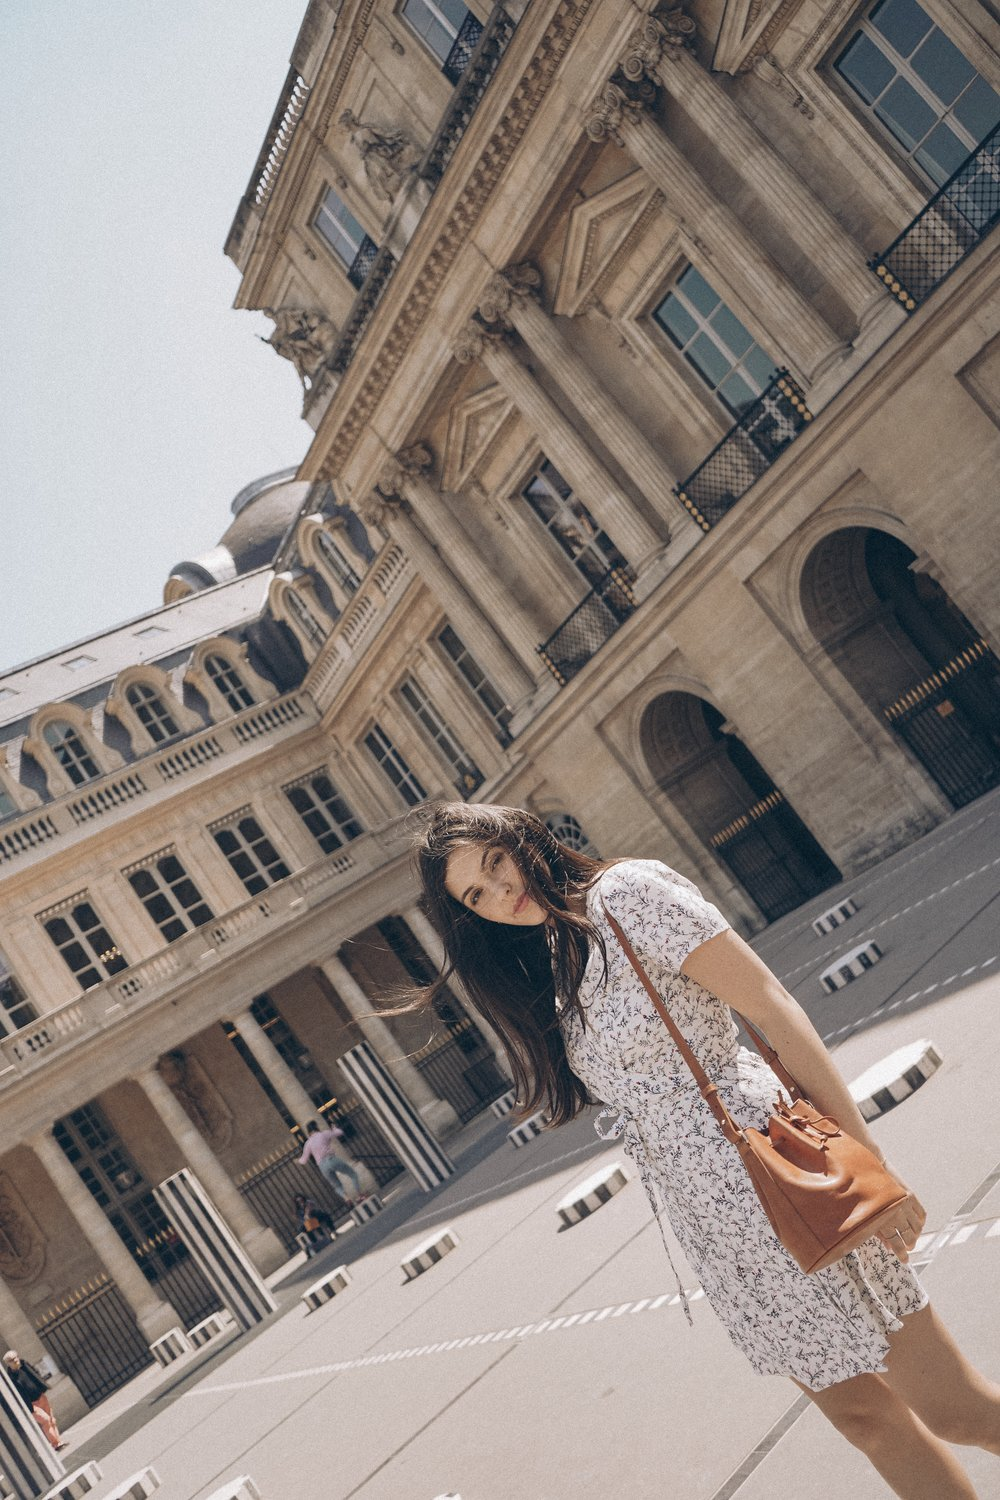 Paris for the Weekend Palais Royale Julia Friedman wearing Sezane